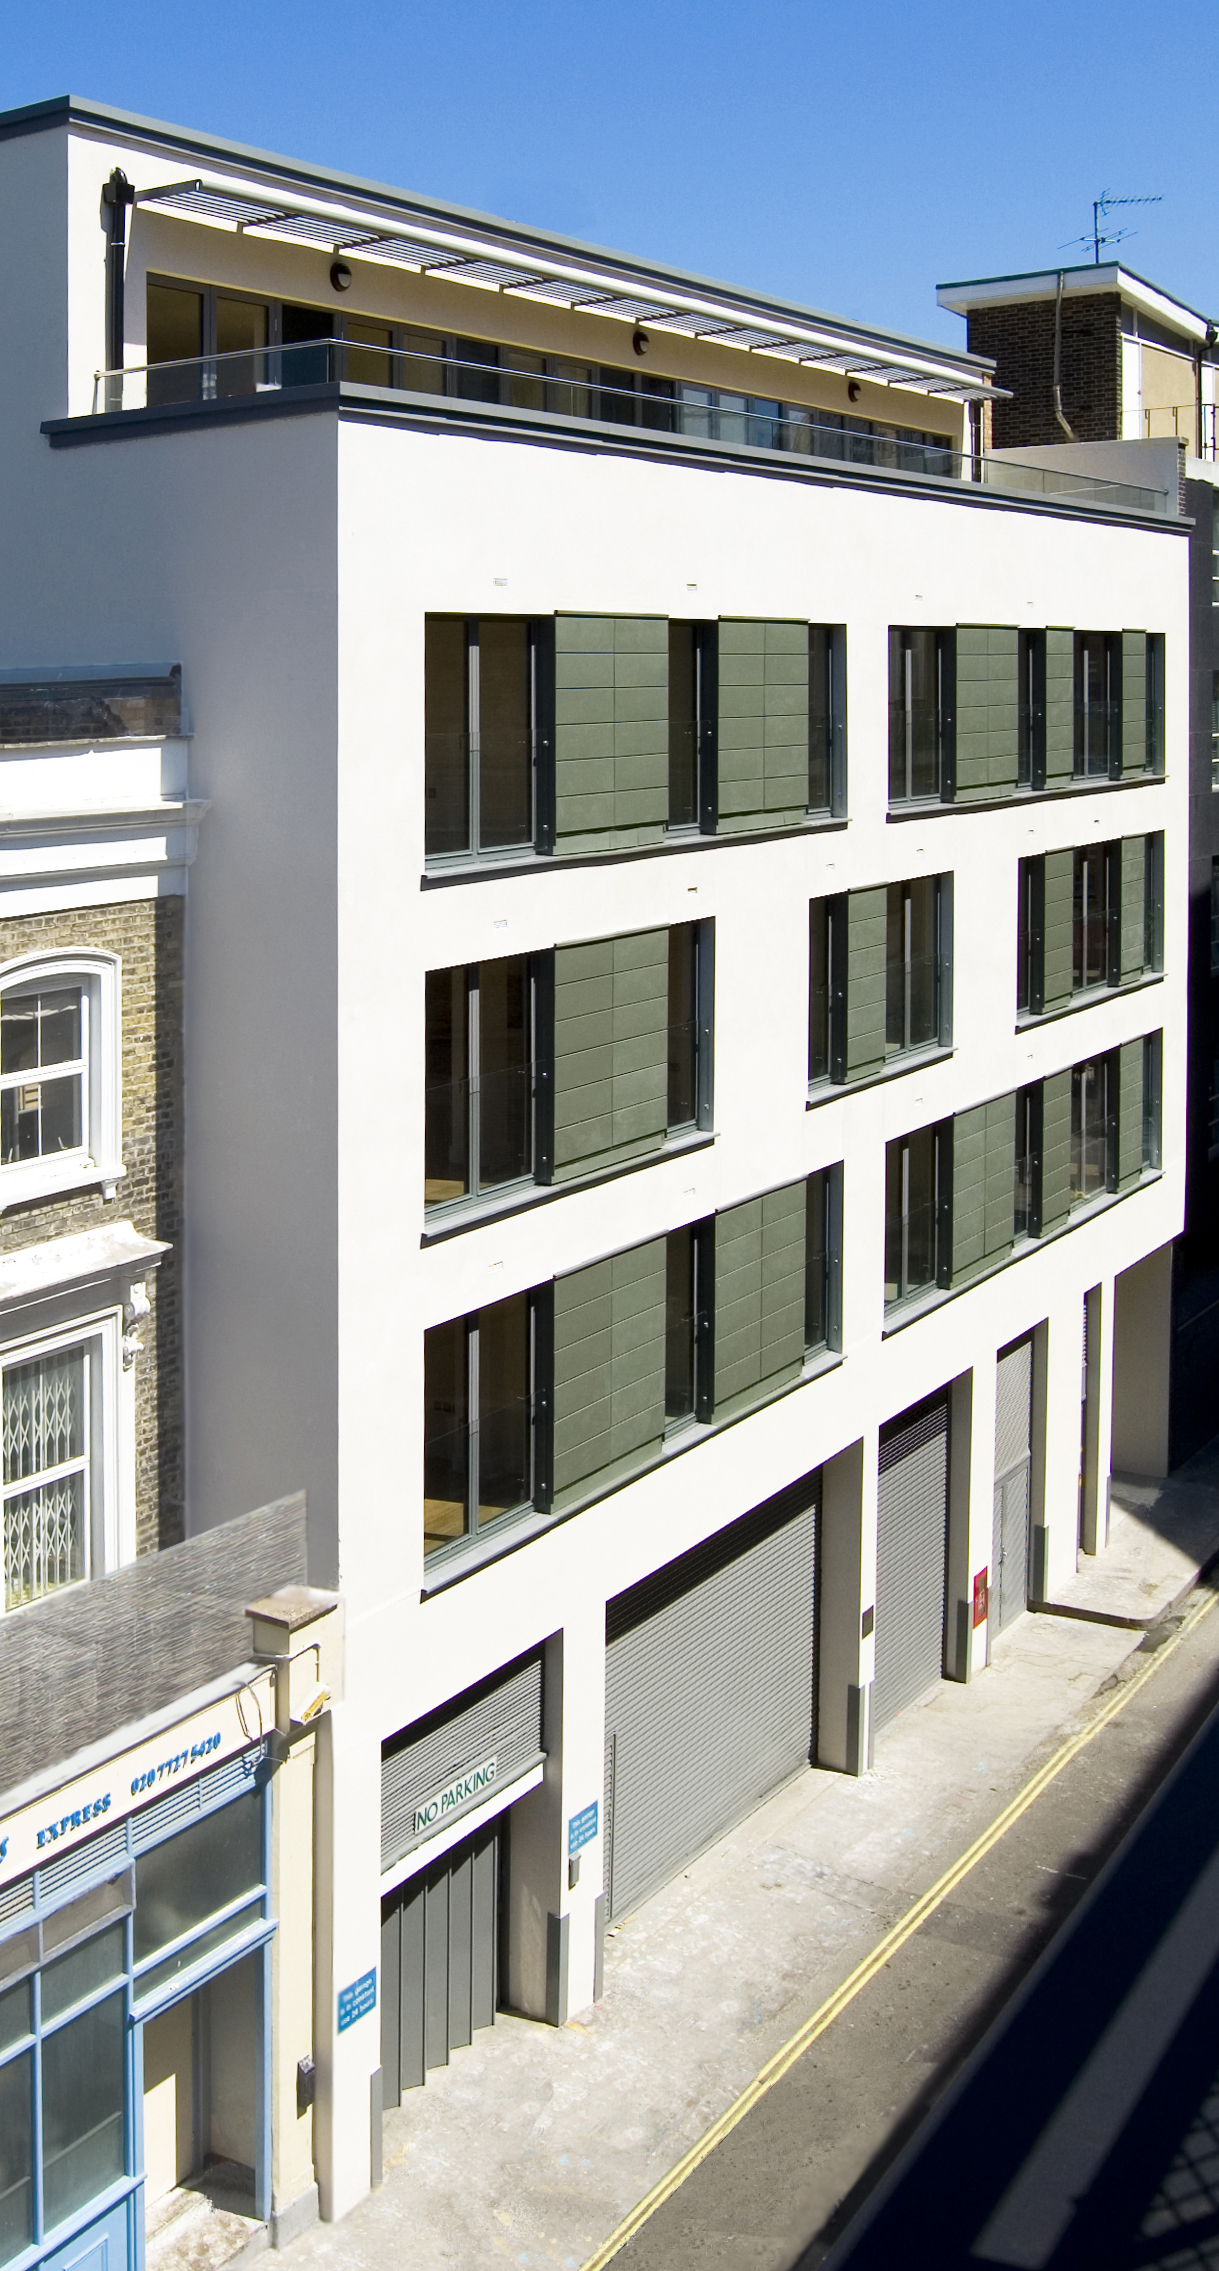 The finished apartment building